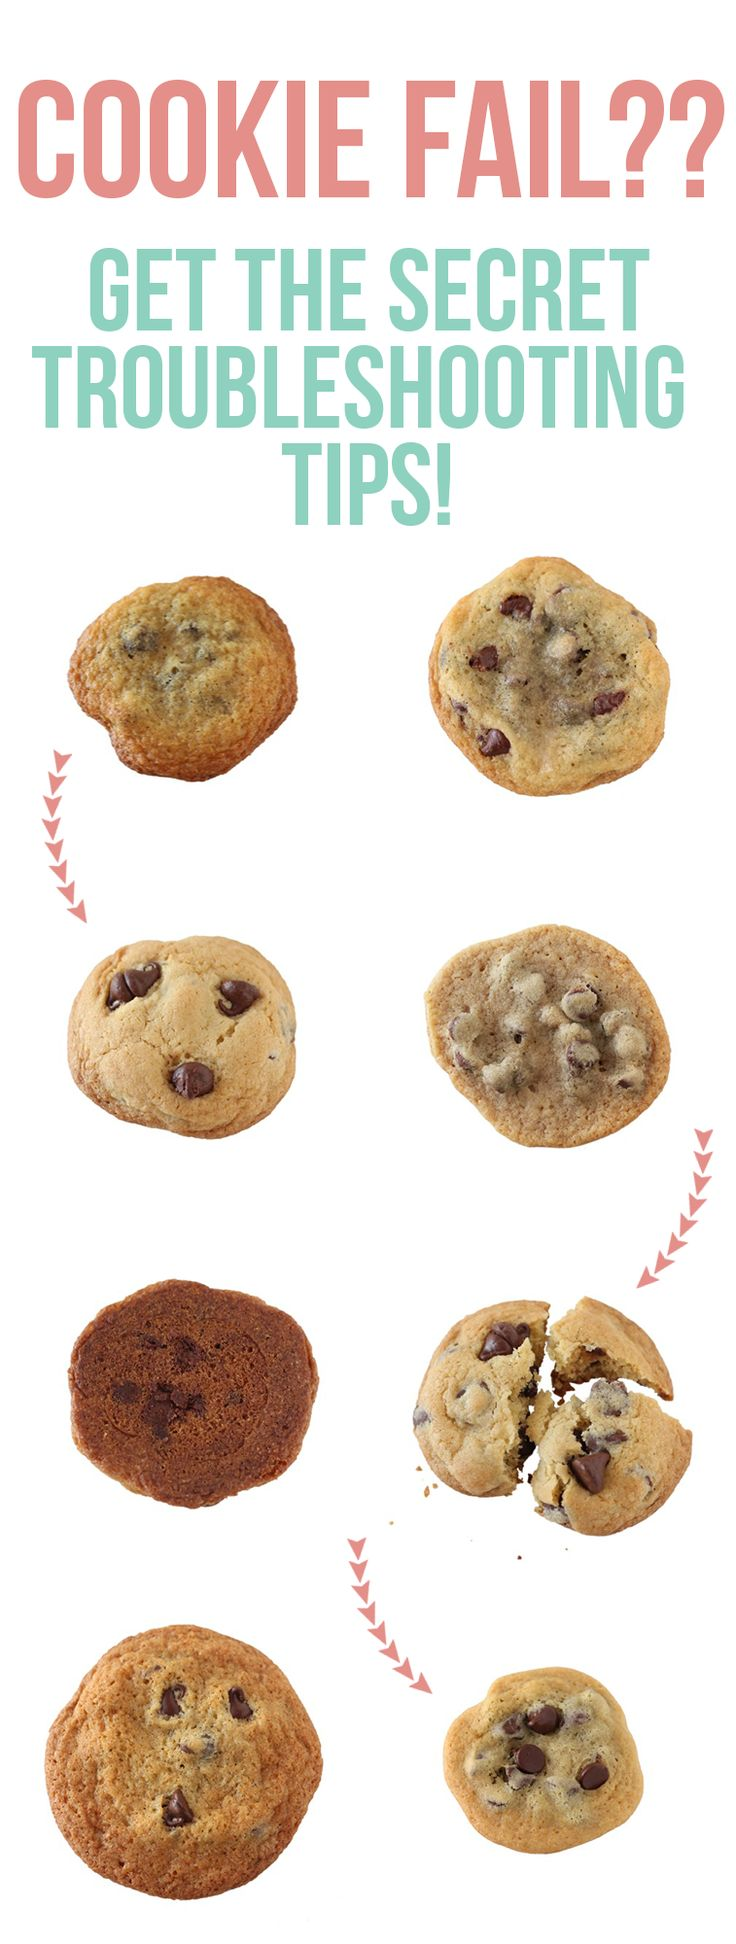 Fix cookies that are too flat, thick, greasy, crumbly, hard, or blah! FINALLY I can have perfect cookies!